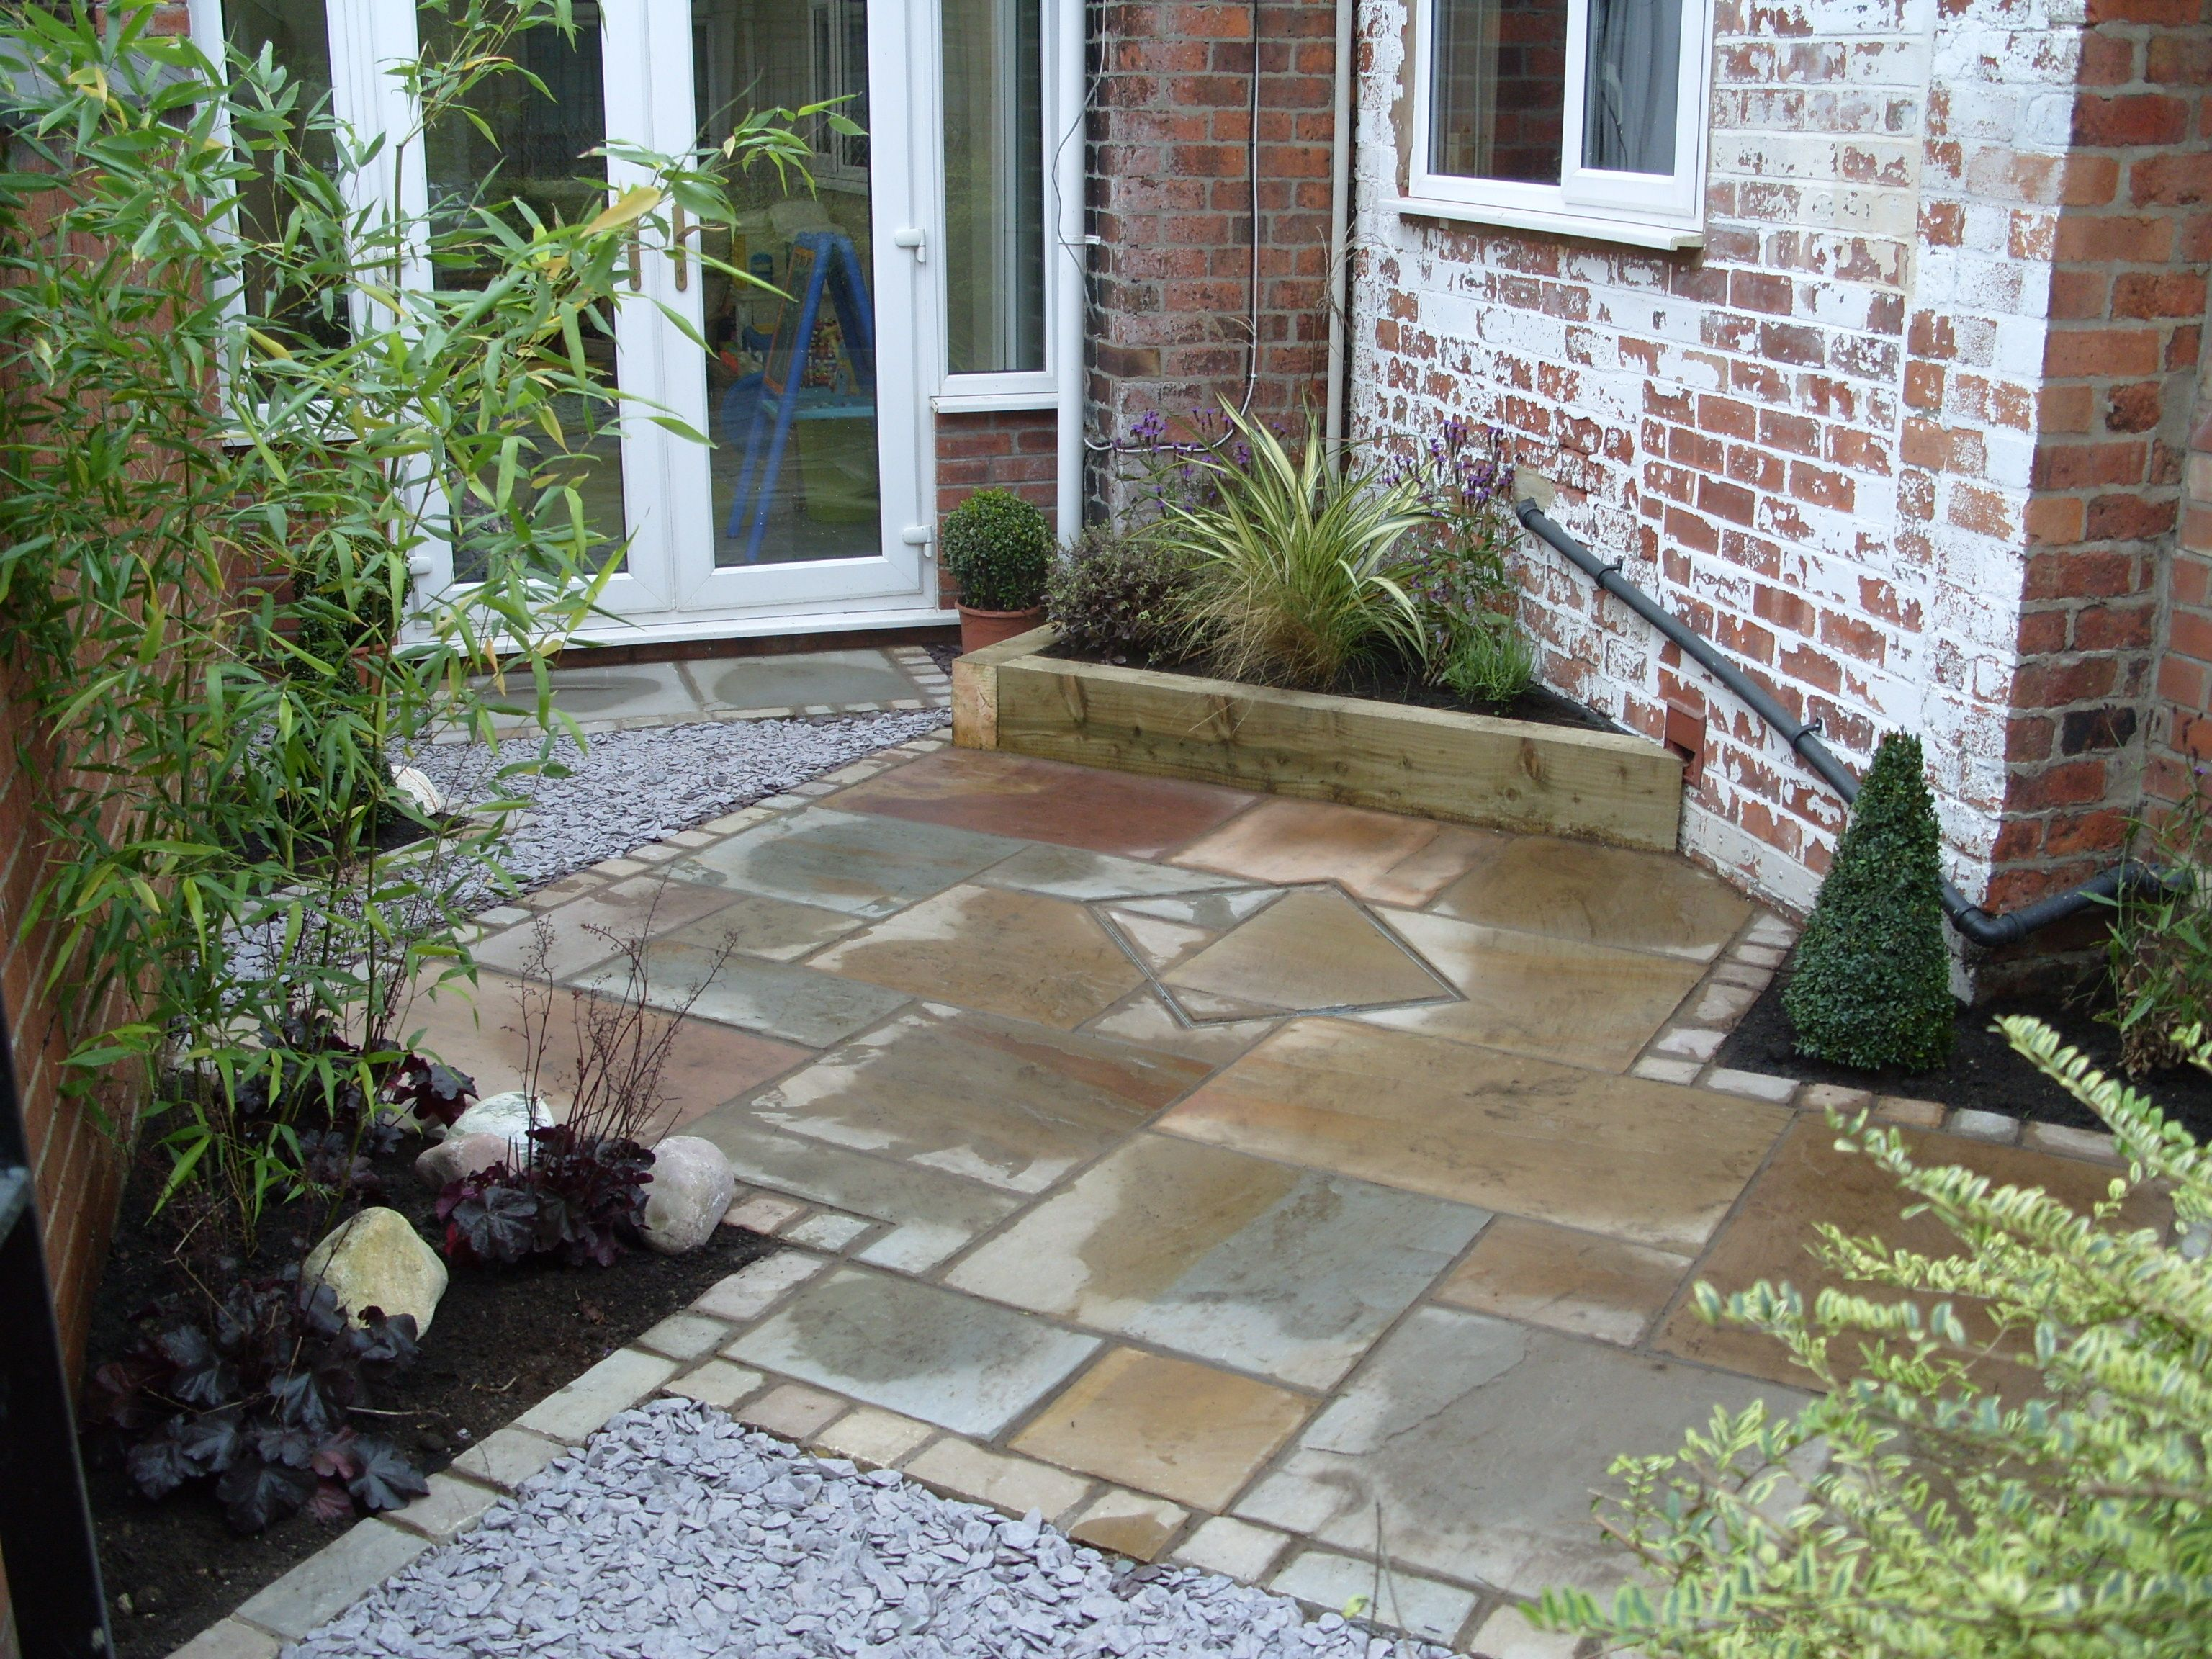 Courtyard garden ideas courtyards angie barker trading as for Small terrace garden ideas